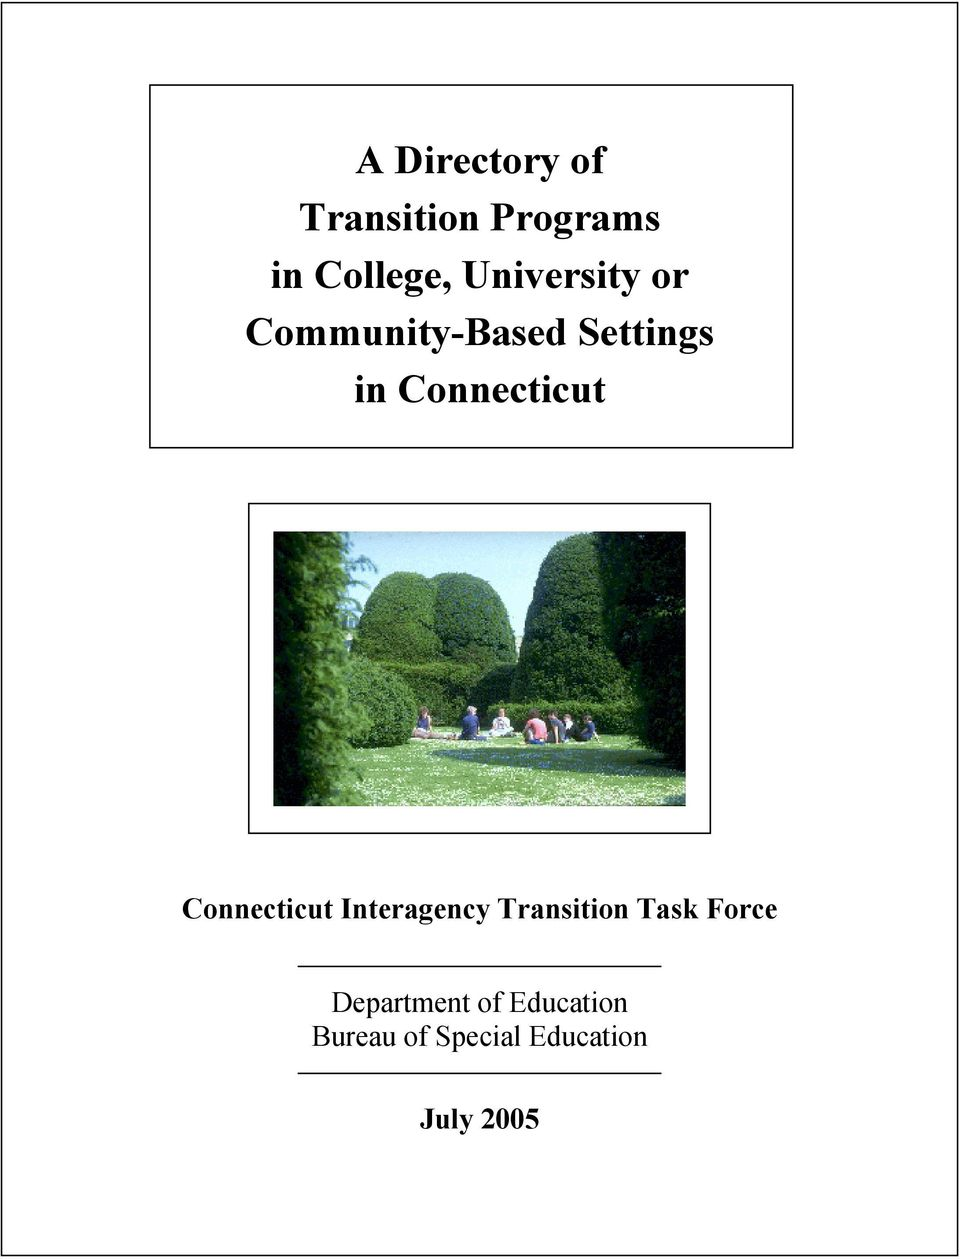 Connecticut Connecticut Interagency Transition Task